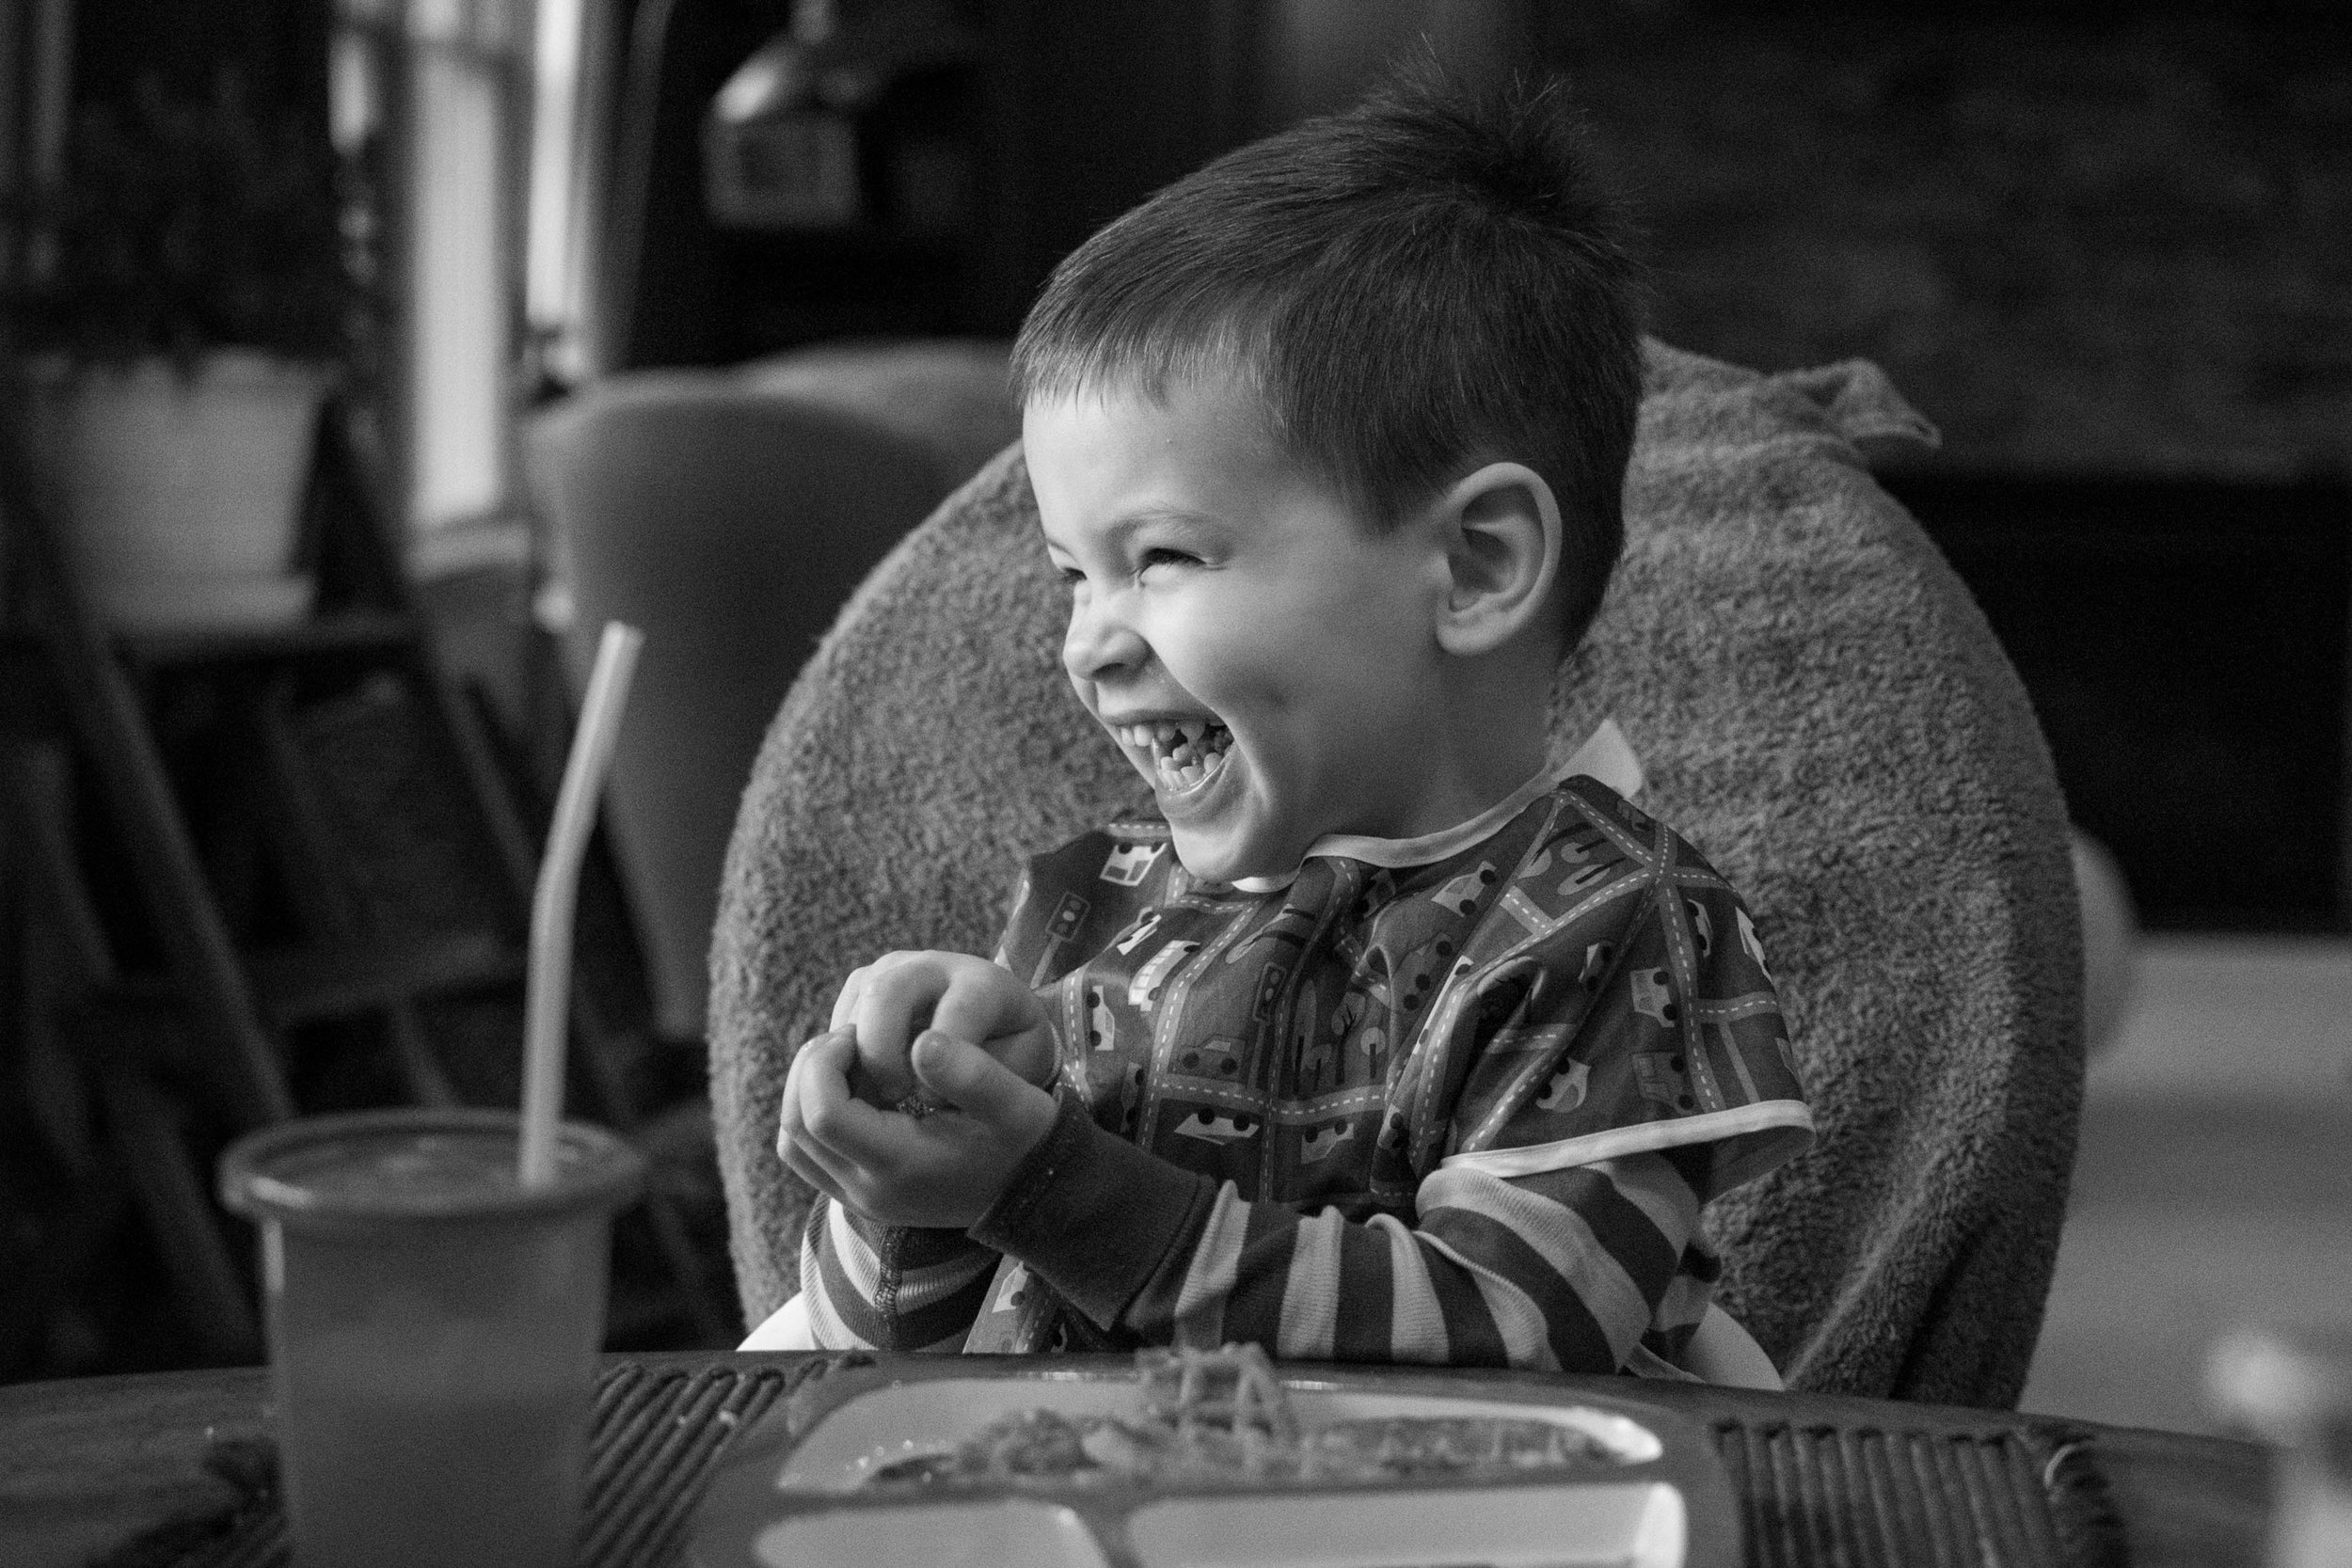 Boy laughing in kitchen